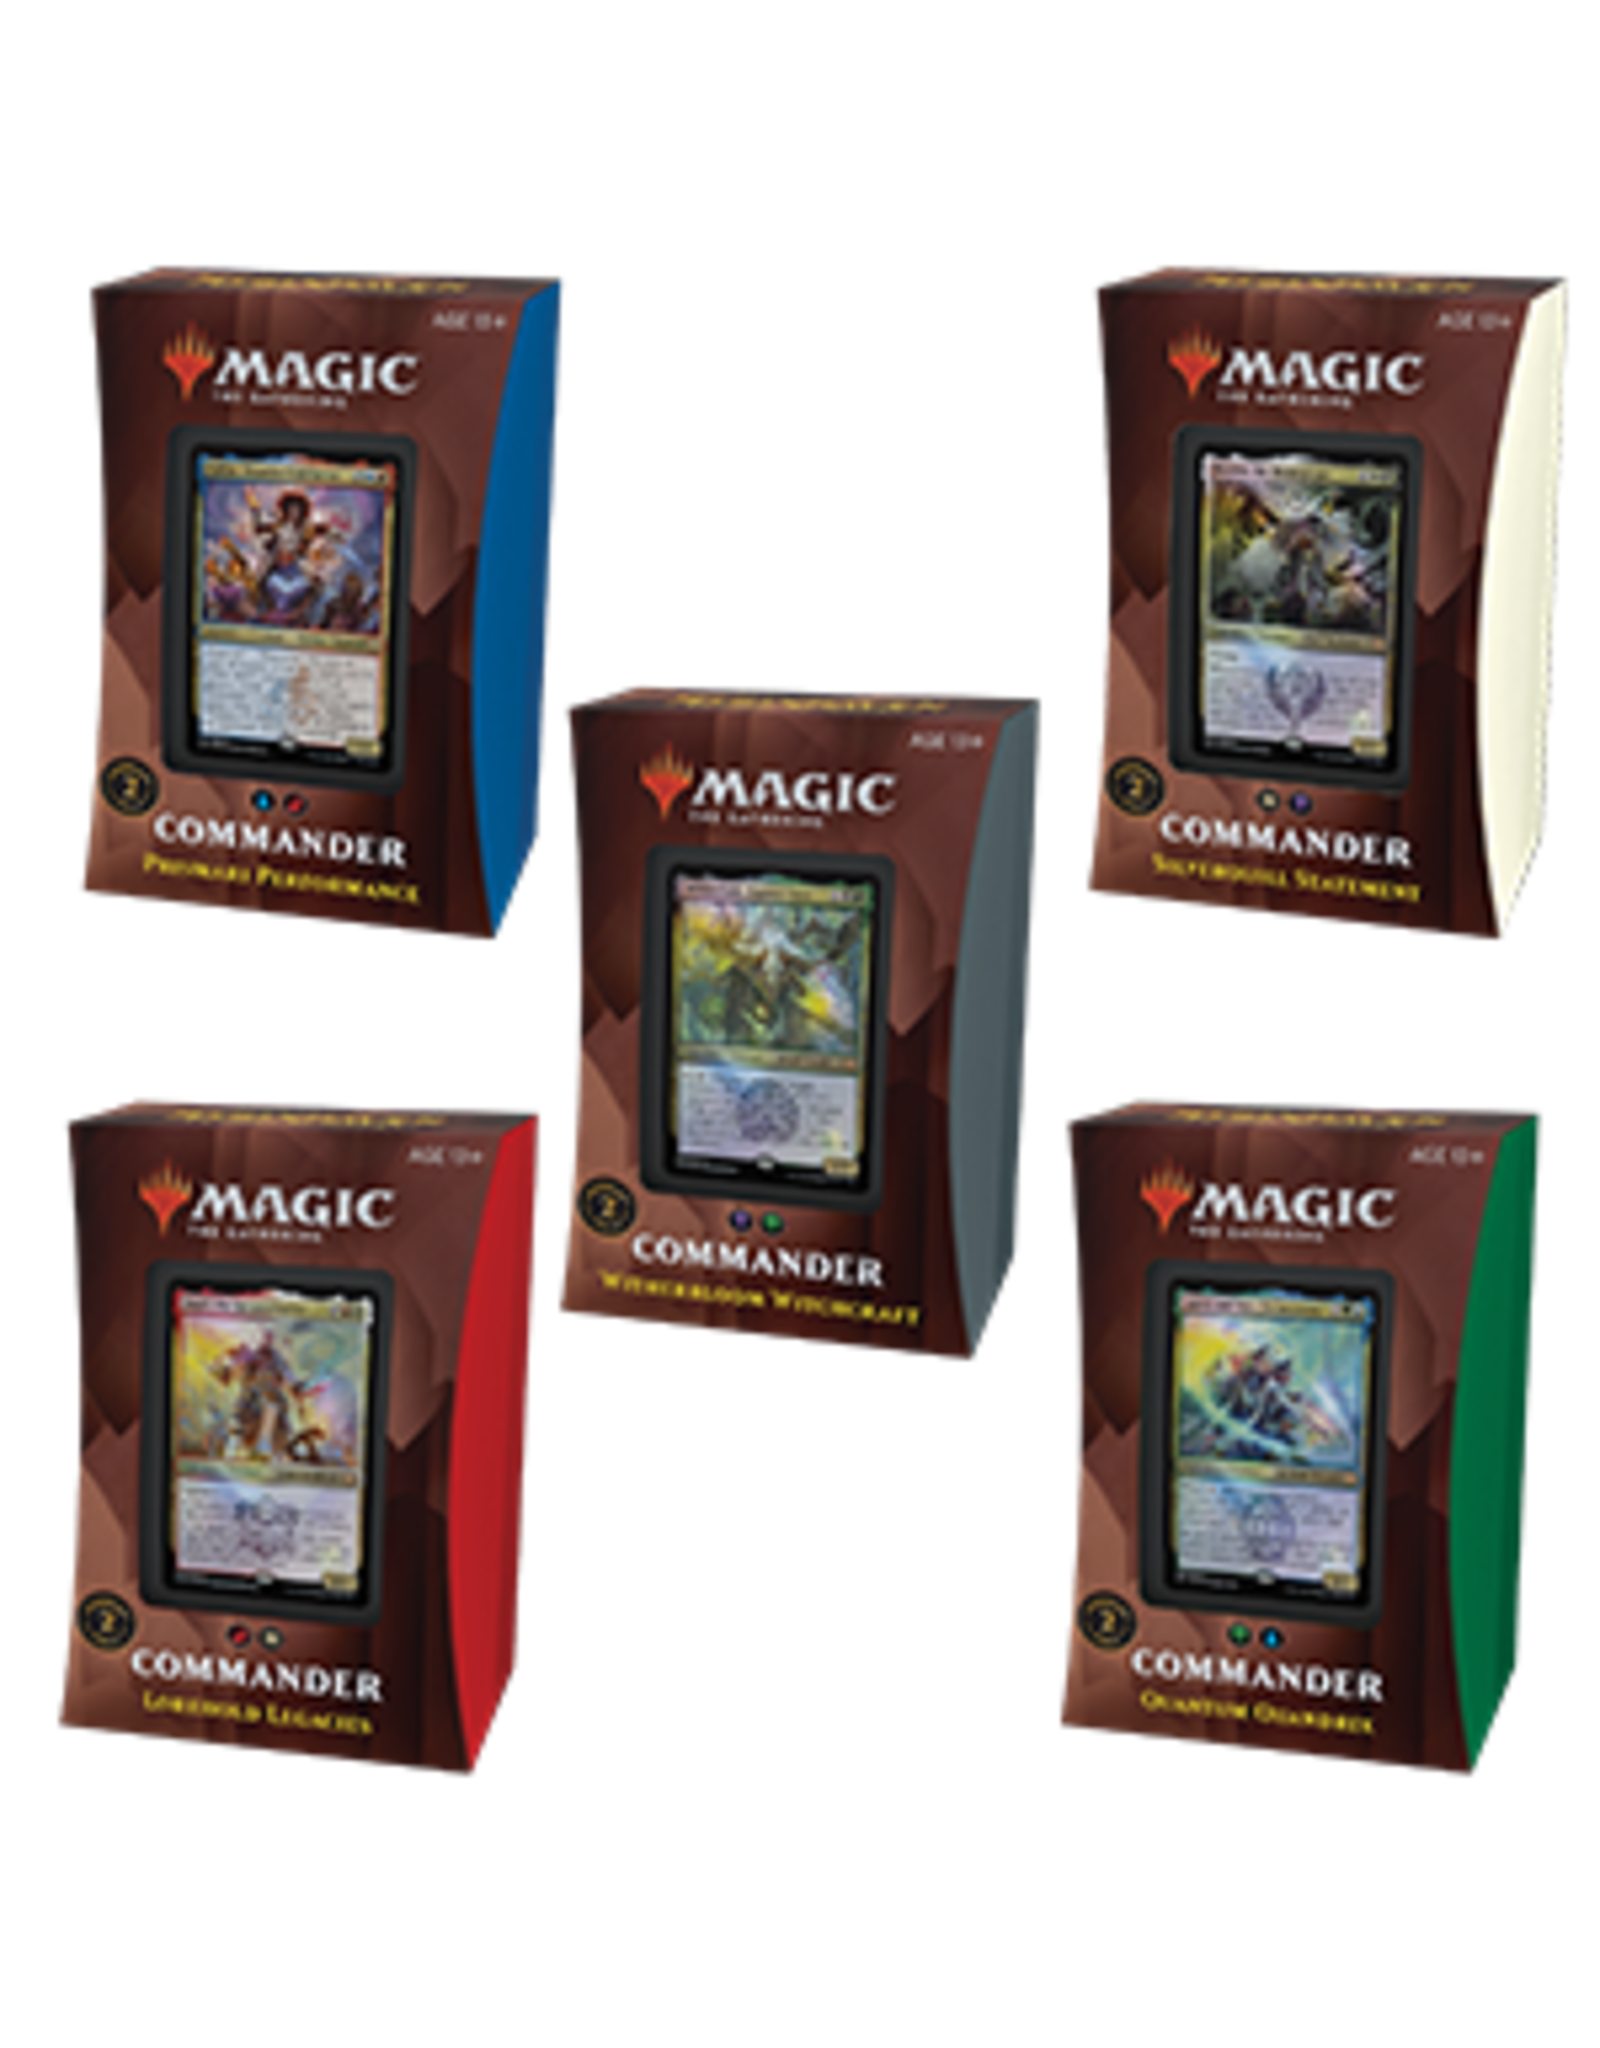 Magic: The Gathering Magic: The Gathering - Strixhaven: School of Mages - Commander Deck Display